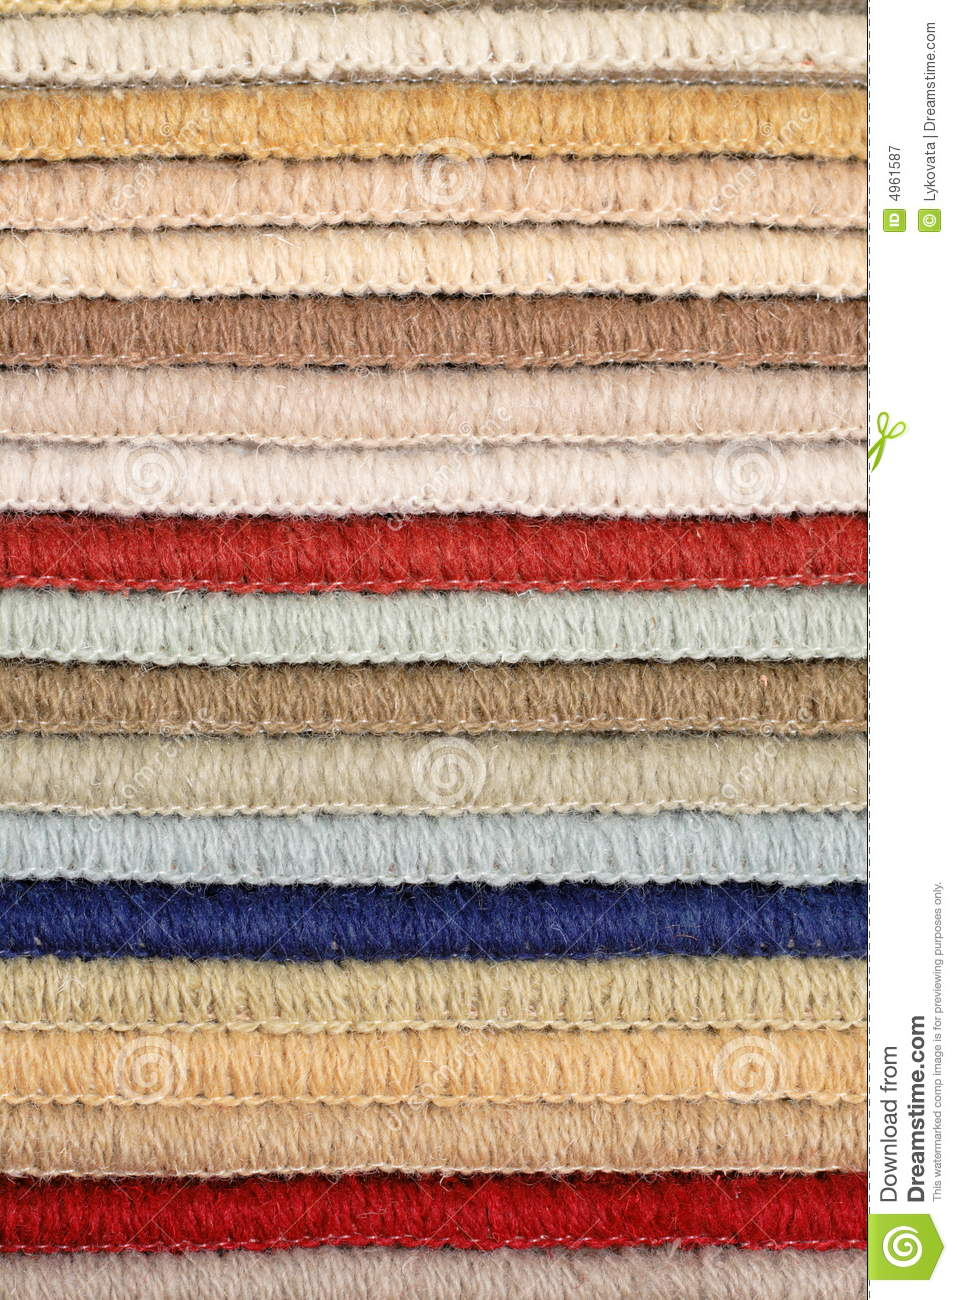 Samples Of Carpet Royalty Free Stock Photography Image